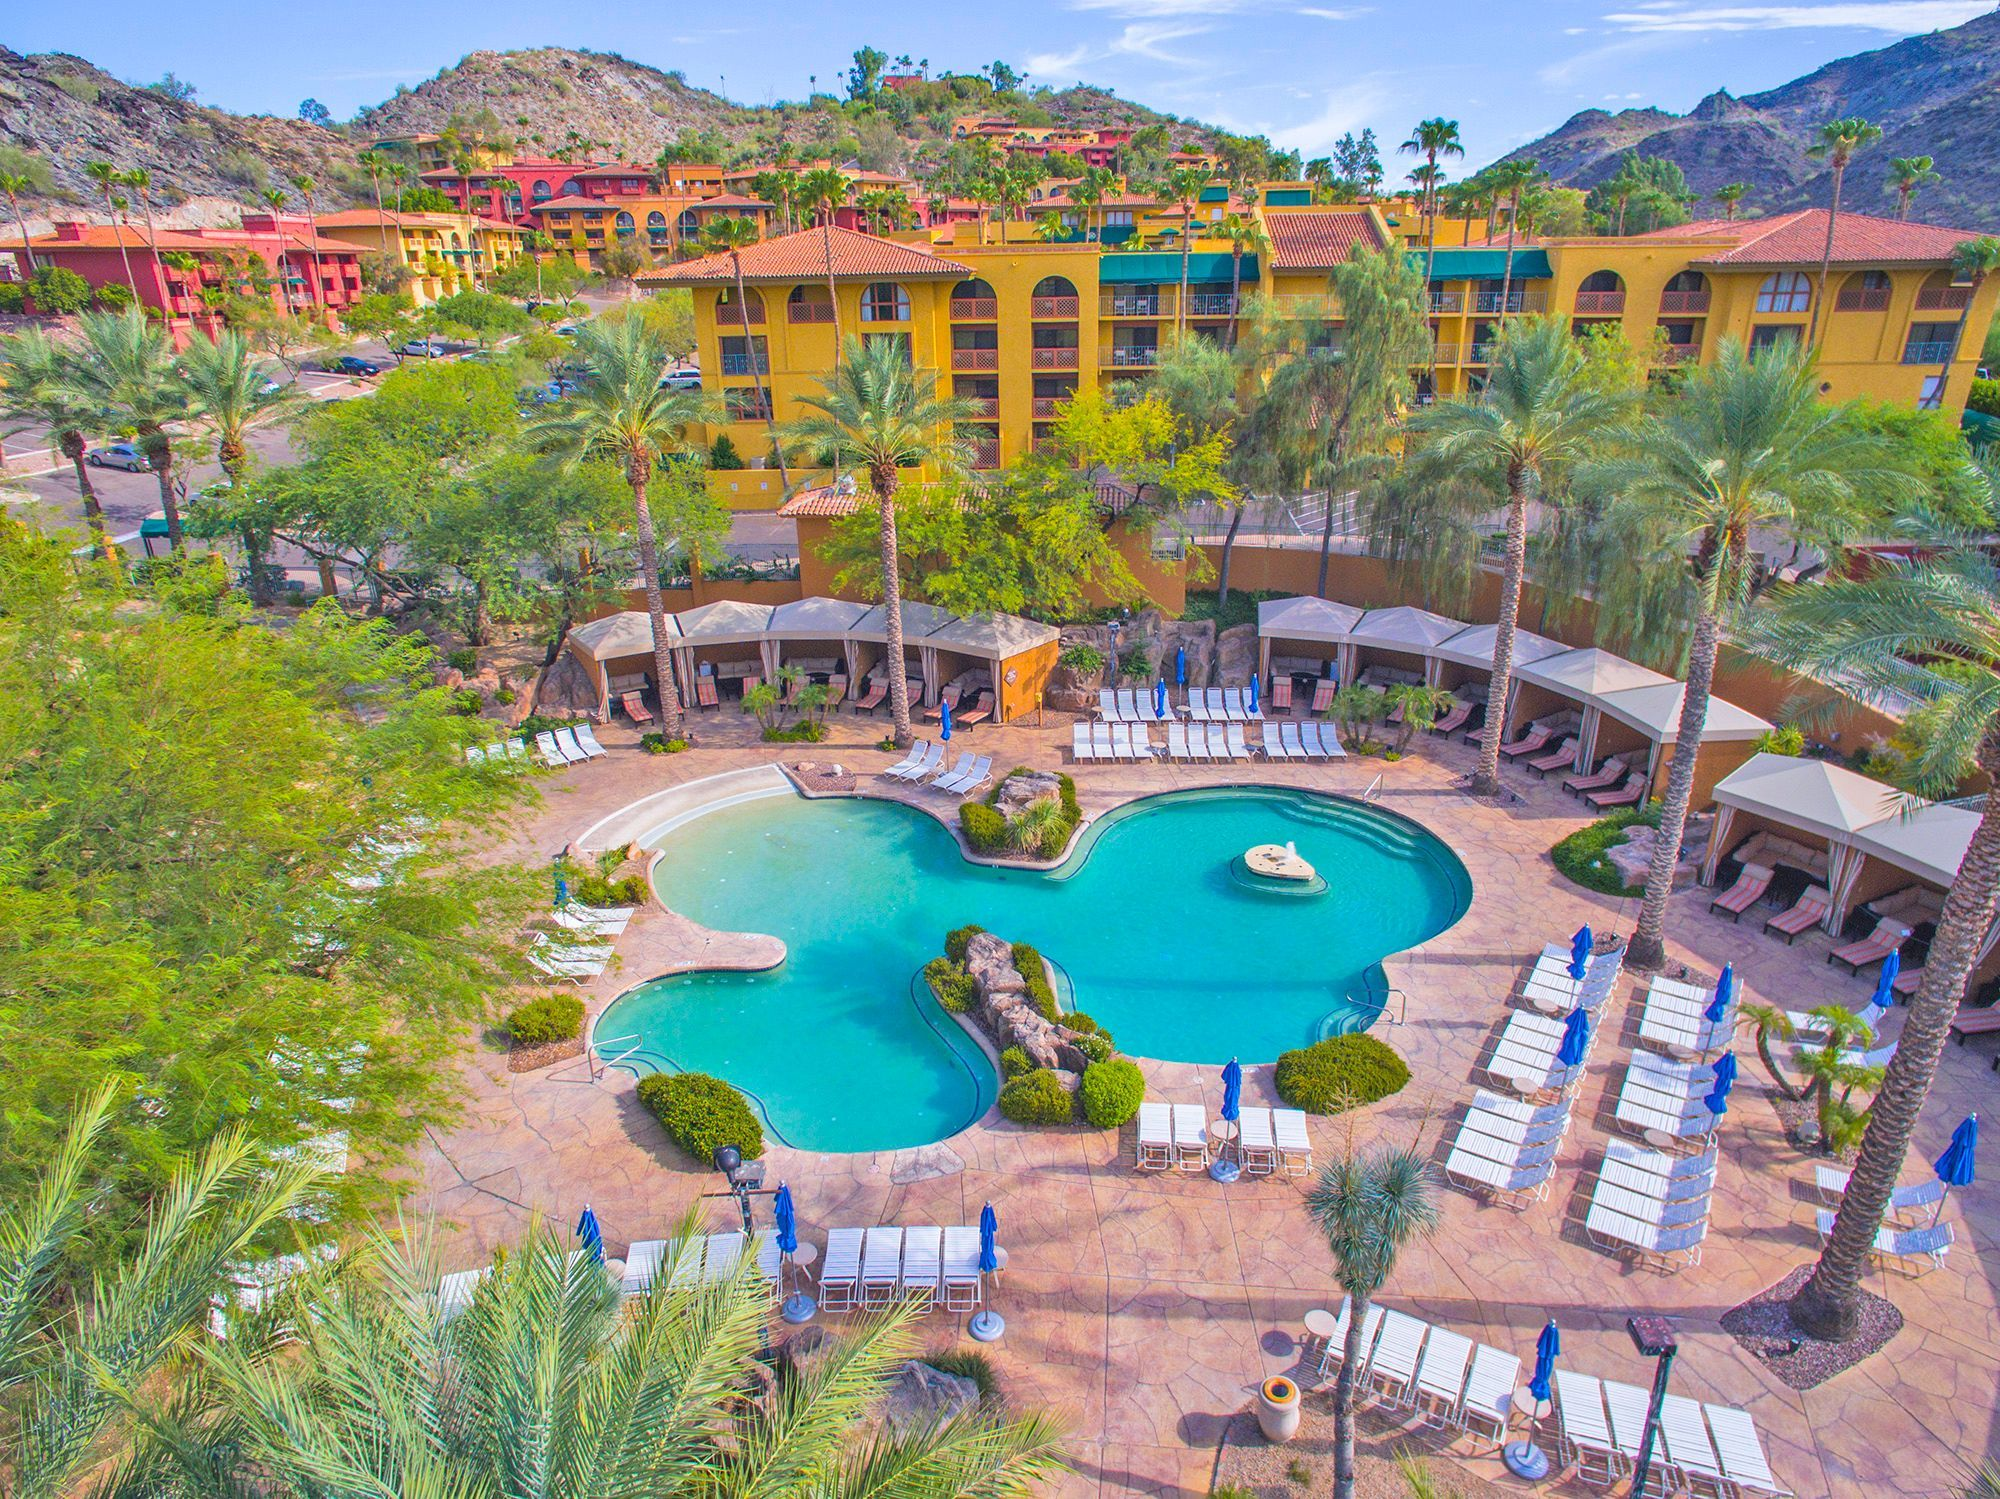 Pointe Hilton Tapatio Cliffs |   Deal: Rates starting at $110per night.  Activities: Poolside games and movies, Wildlife World Zoo visits, salsa challenges, scavenger hunts and  dining and drink specials.  Details: 602-866-7500, tapatiocliffshilton.com.